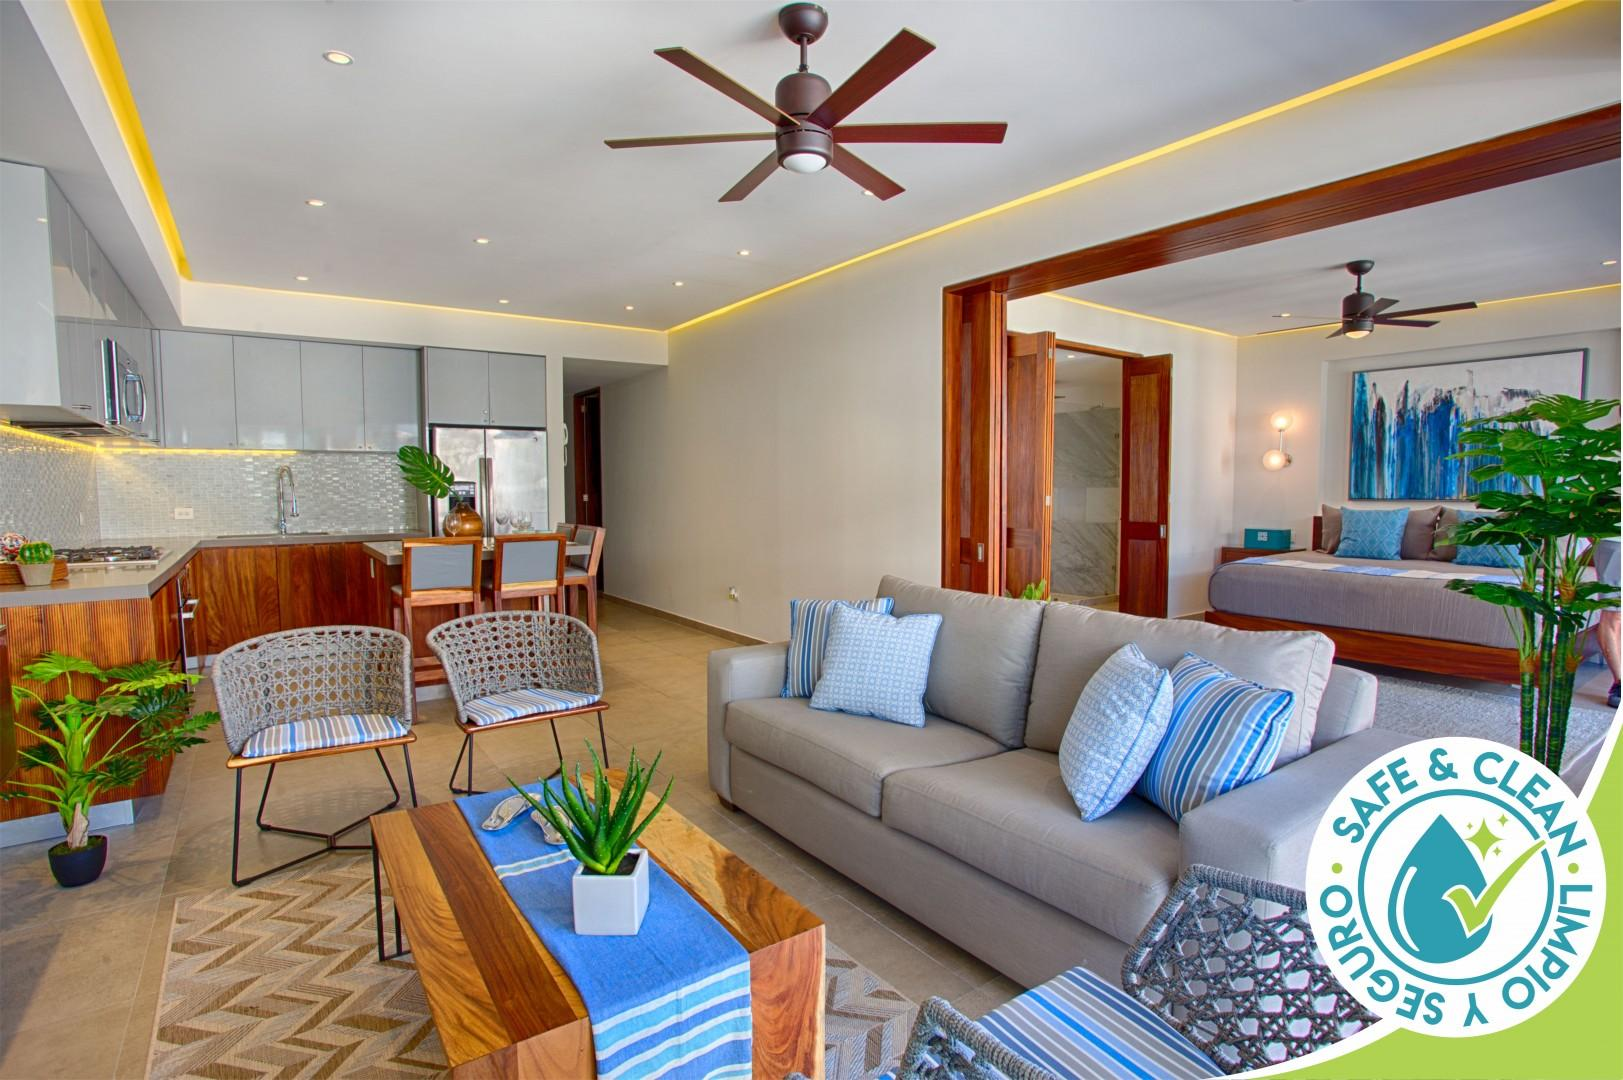 Stylish and Modern Condo at Oceana | Best Gym, Rooftop Pool, Old Town